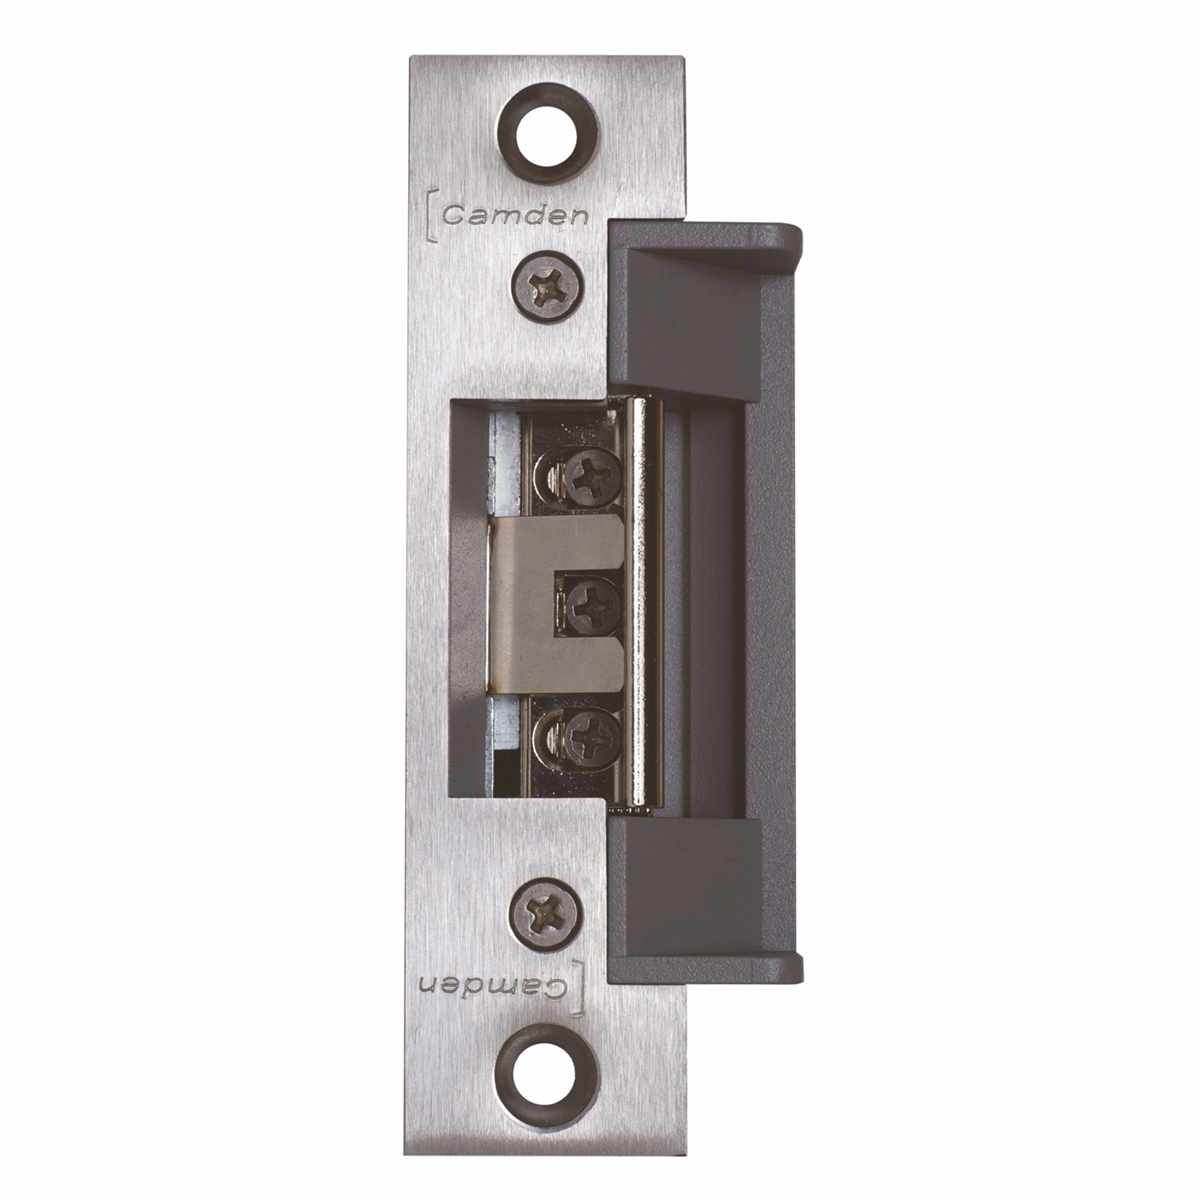 Camden Door Controls Cx-Epd-2030L Hollow Metal Doors 6 7/8 X 1 1/4\  Electric Strike  sc 1 st  Automatic Door and Hardware : camden doors - pezcame.com